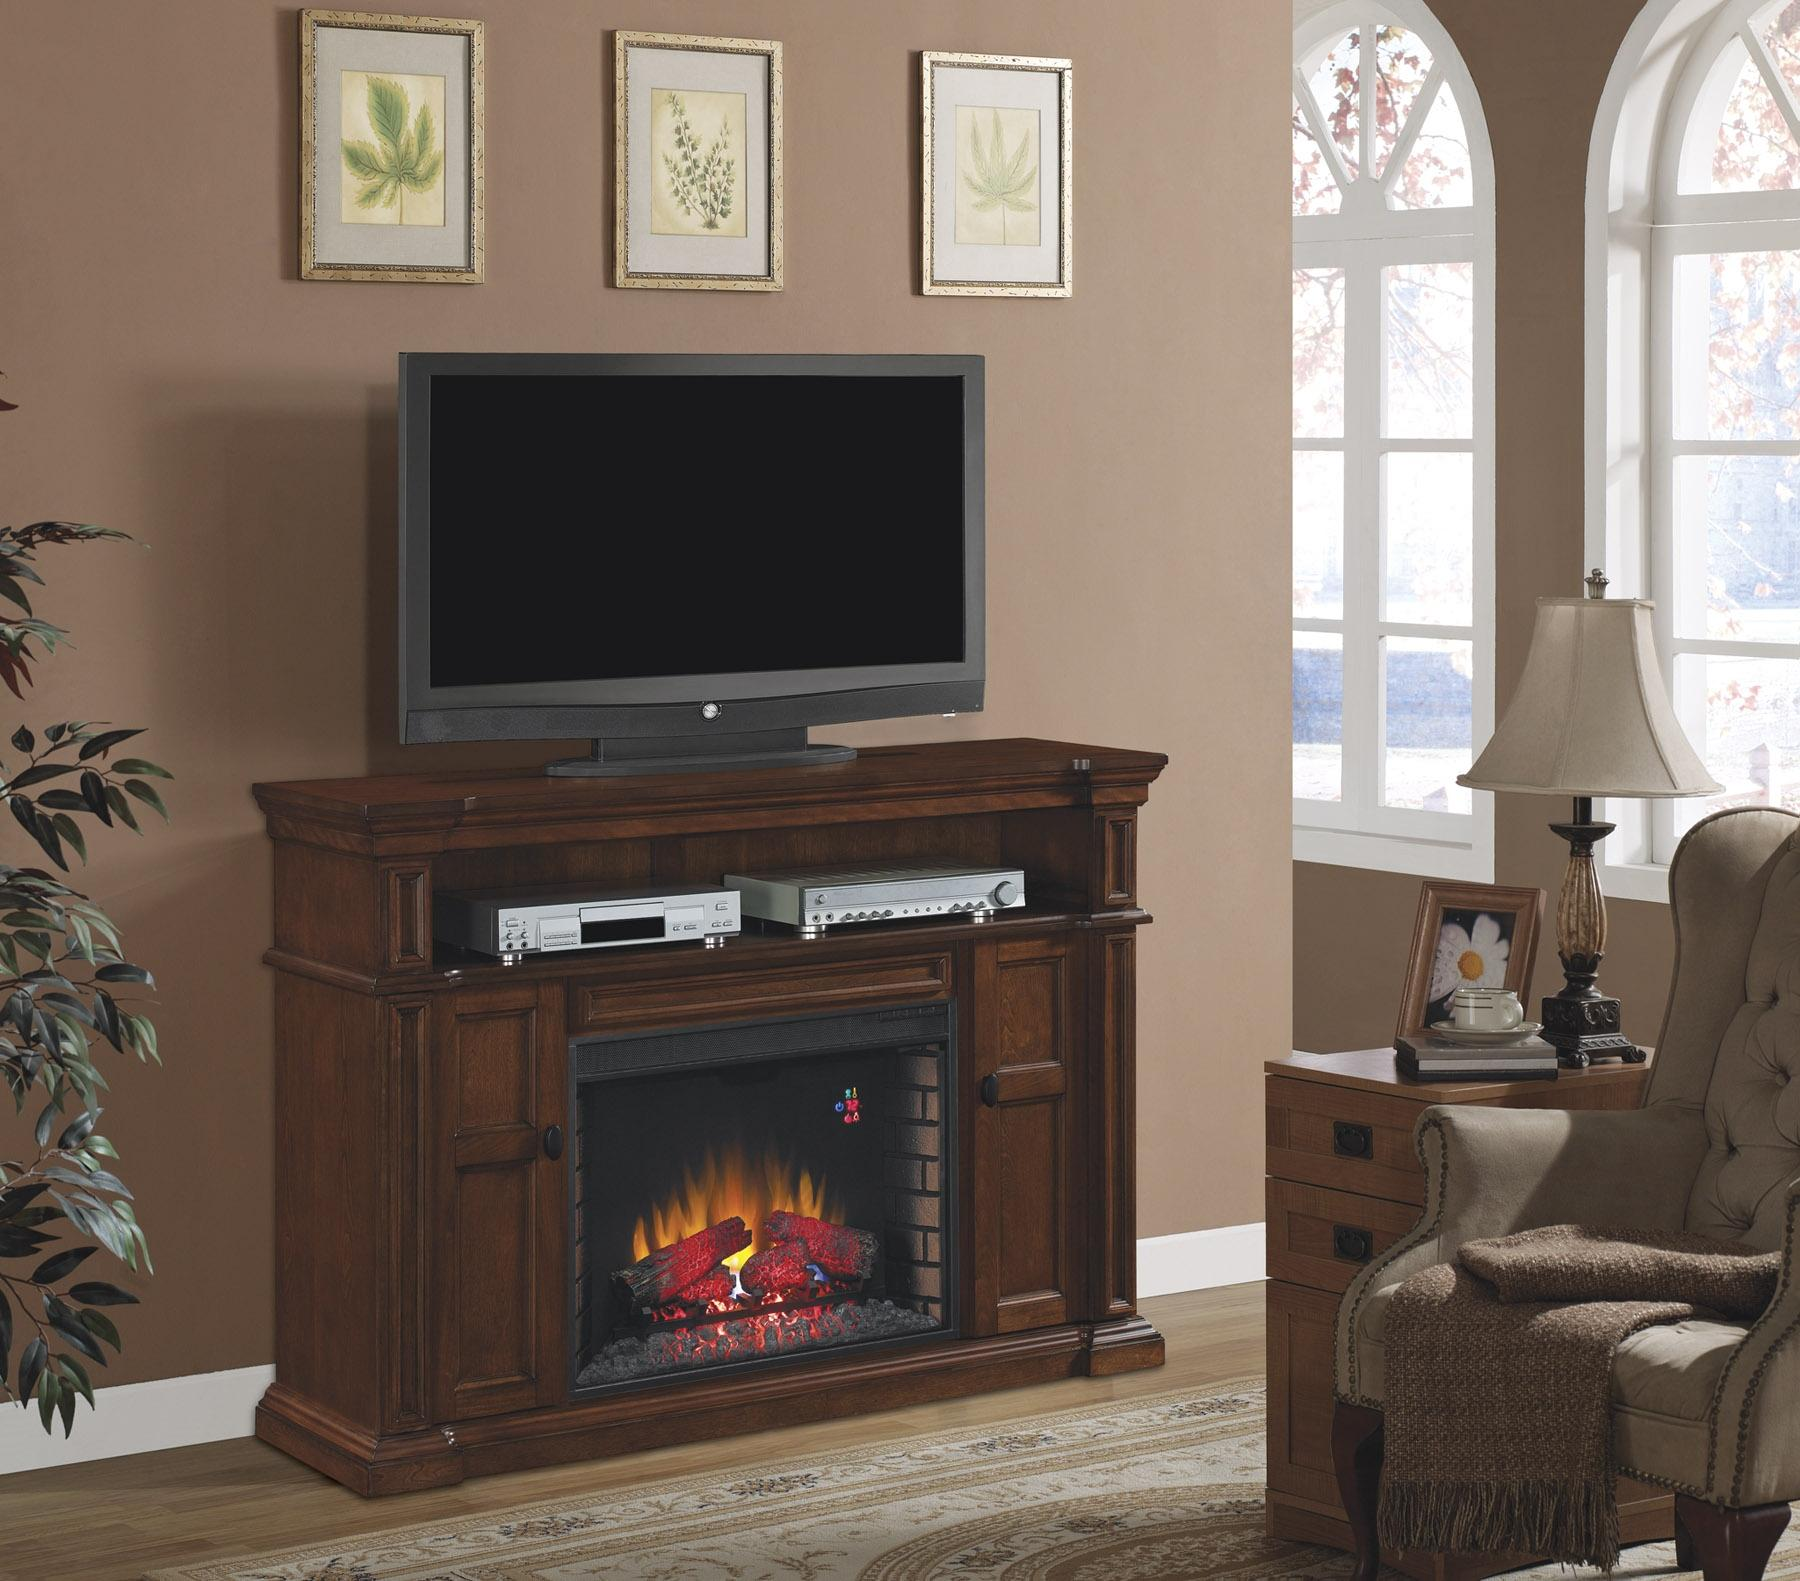 Morris Home Furnishings Ithaca Ithaca 2pc Fireplace w/Insert - Item Number: 28MM4684-M313/28II300GRA